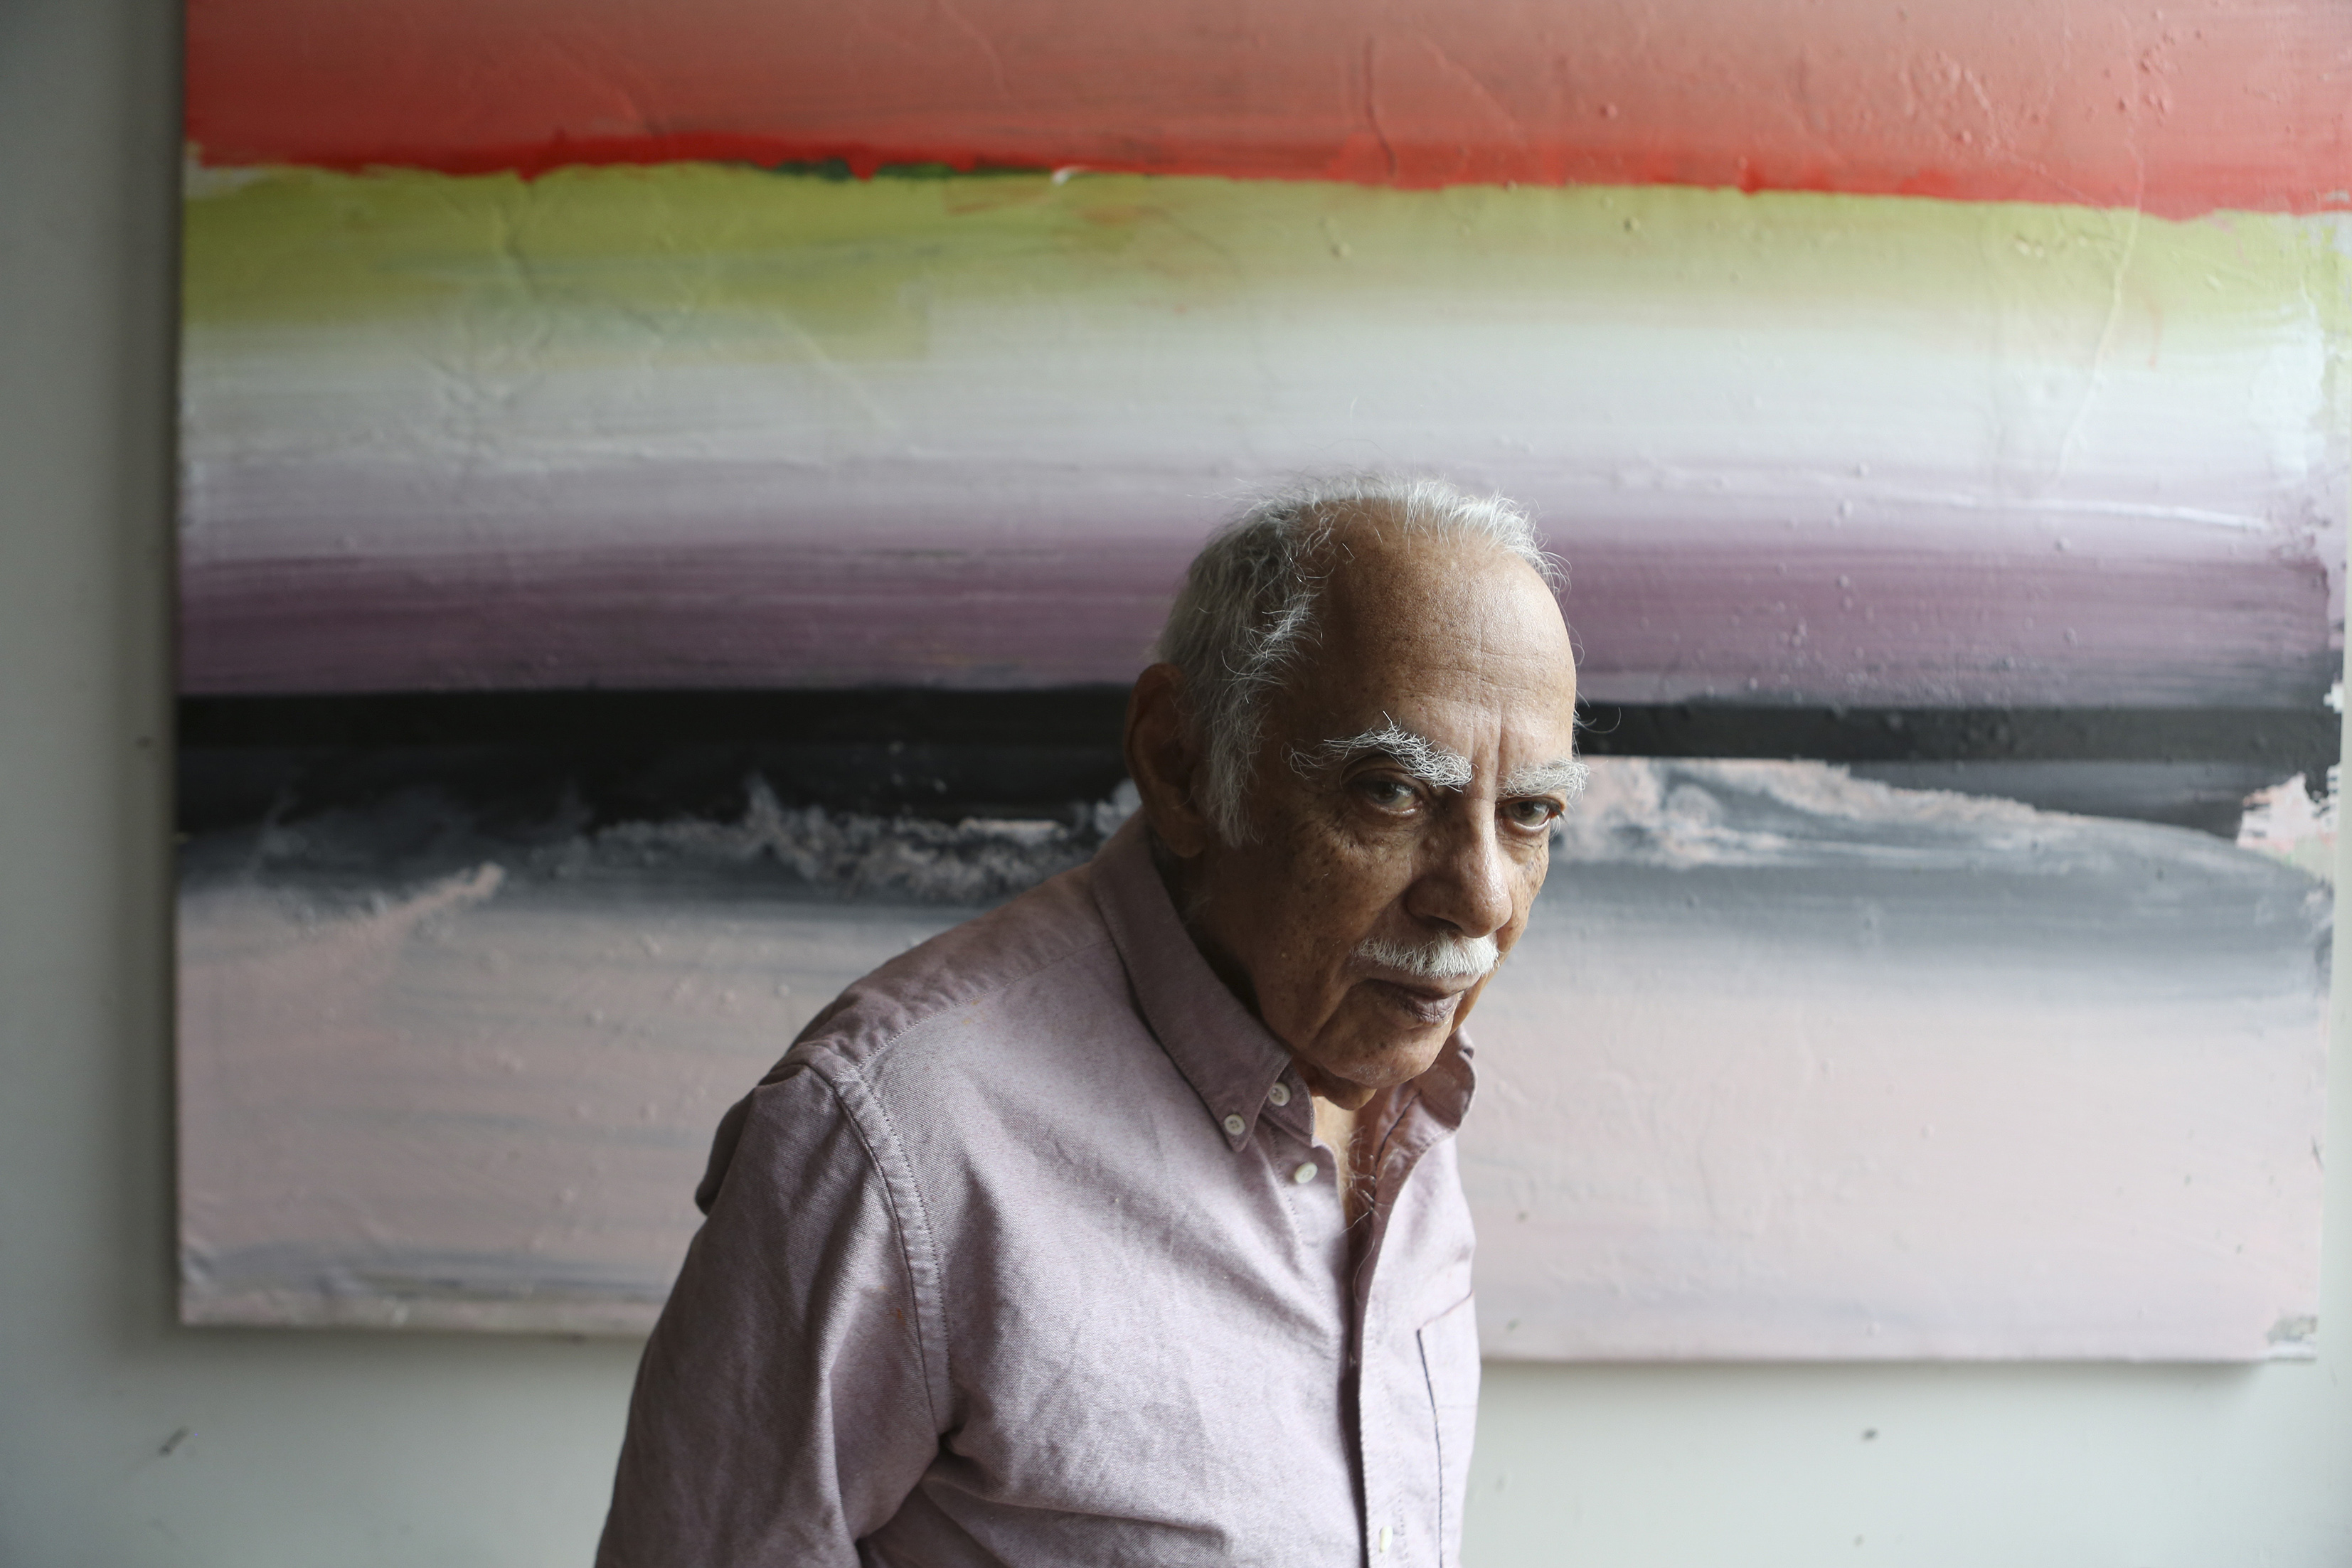 Ed Clark, Key Postwar Artist Who Changed the Shape of Abstract Painting, Is Dead at 93